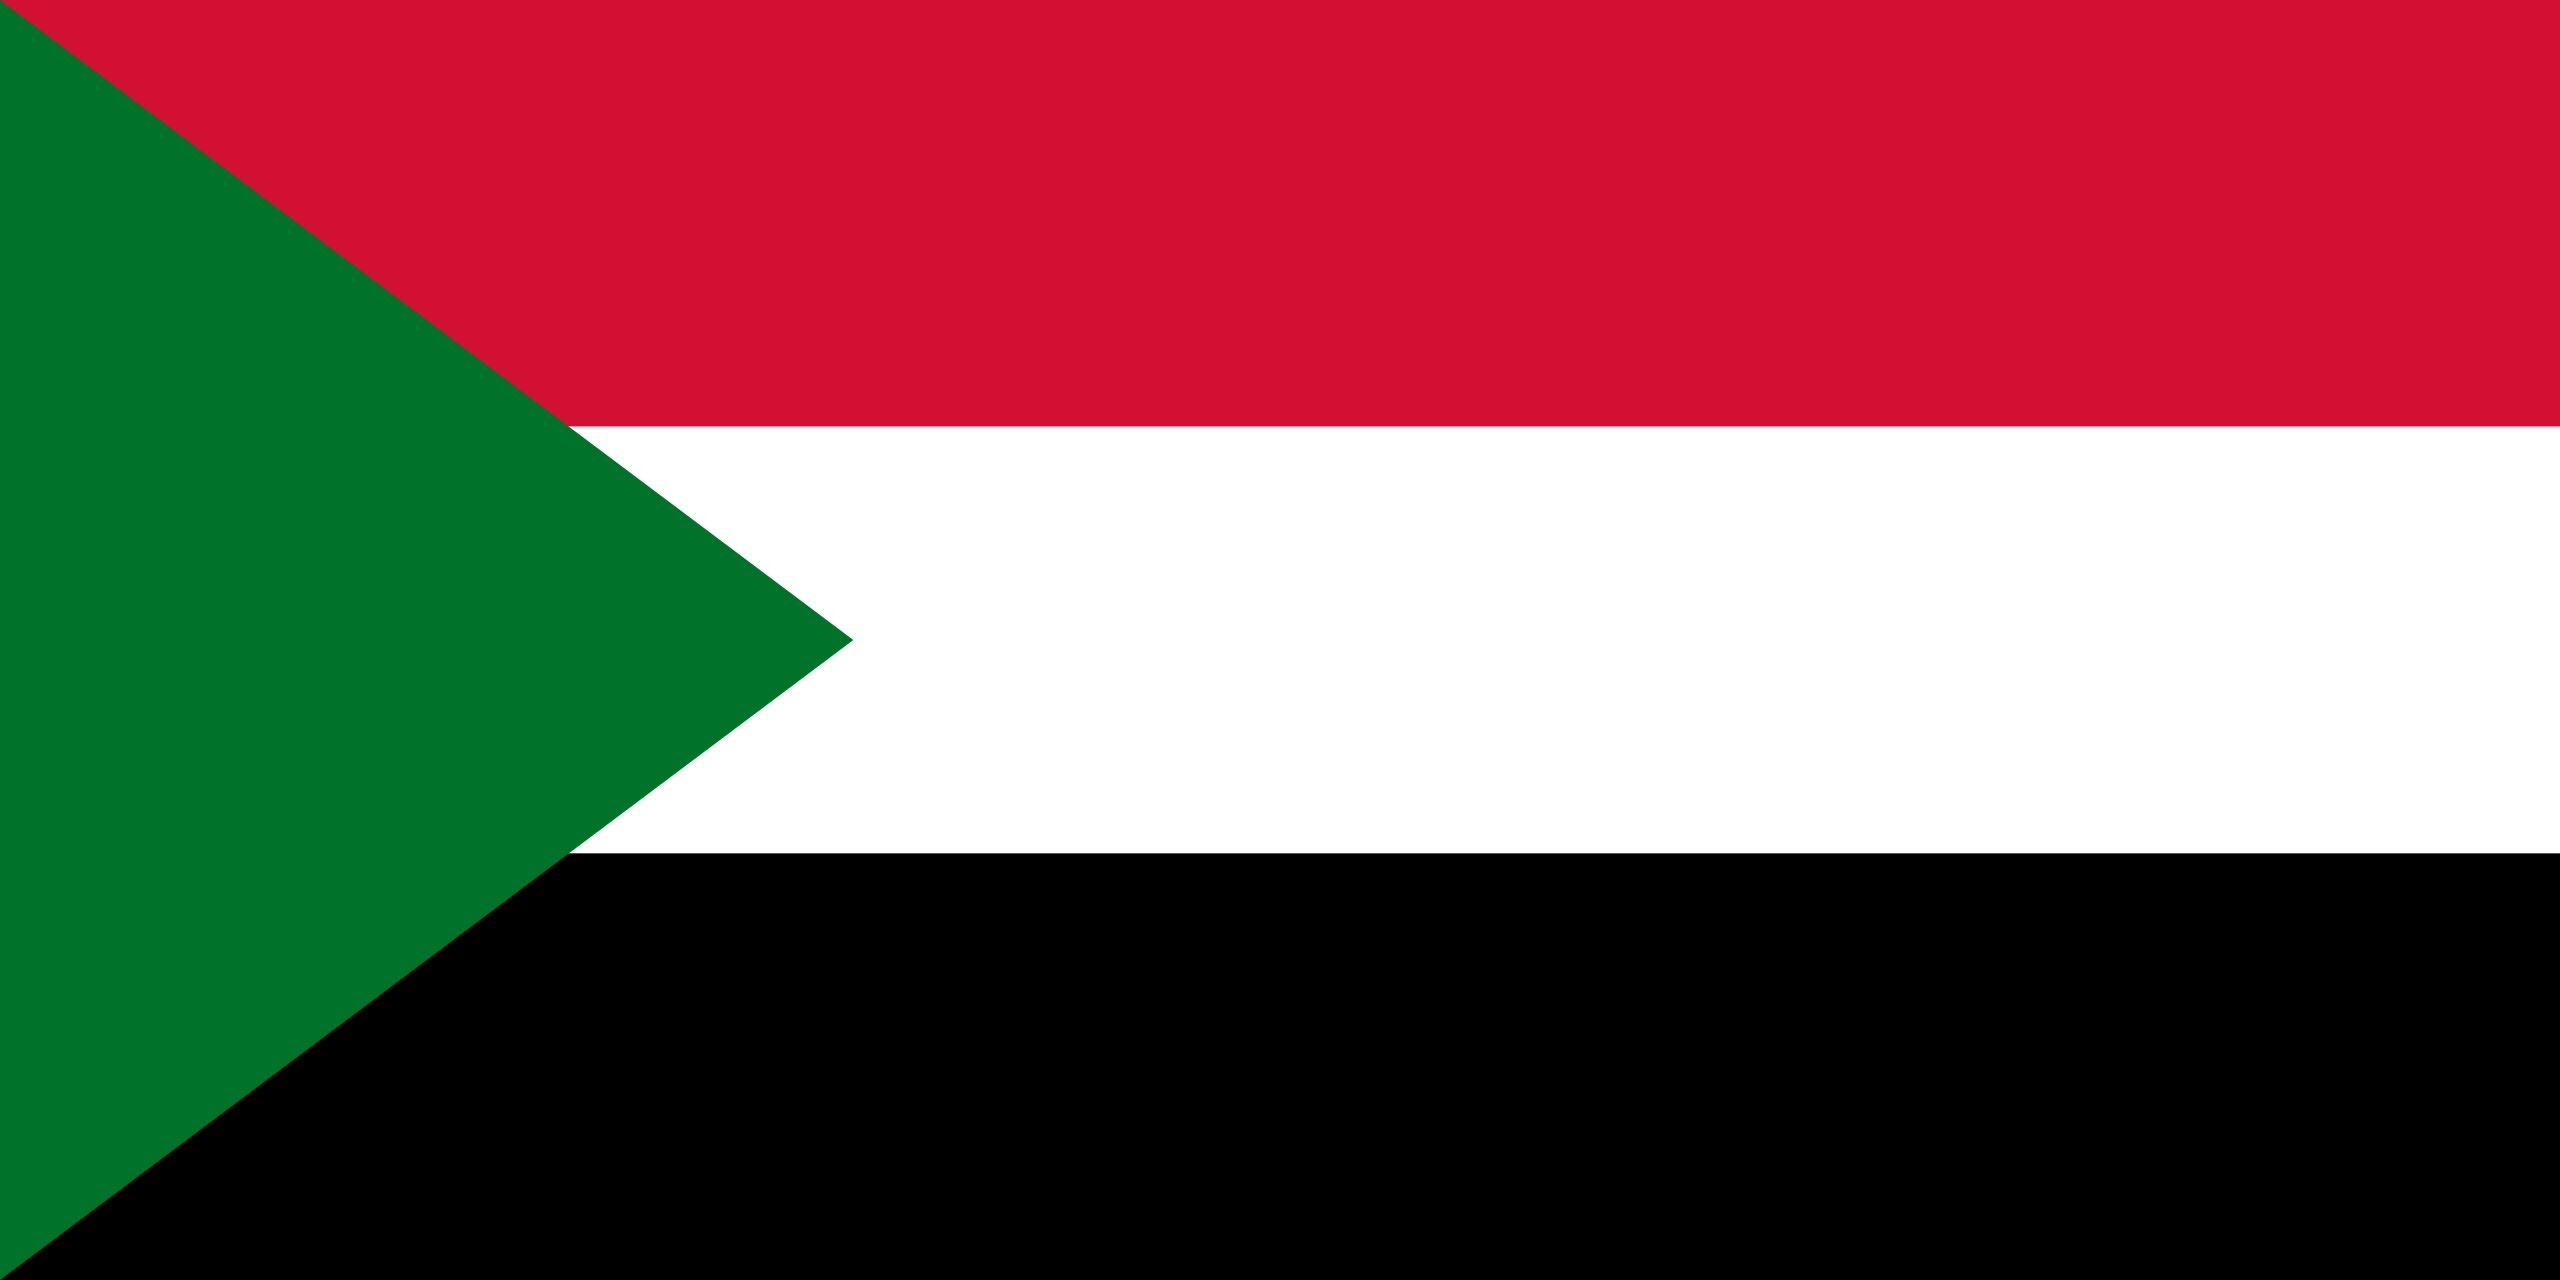 Sudan Flag colors meaning & history of Sudan Flag